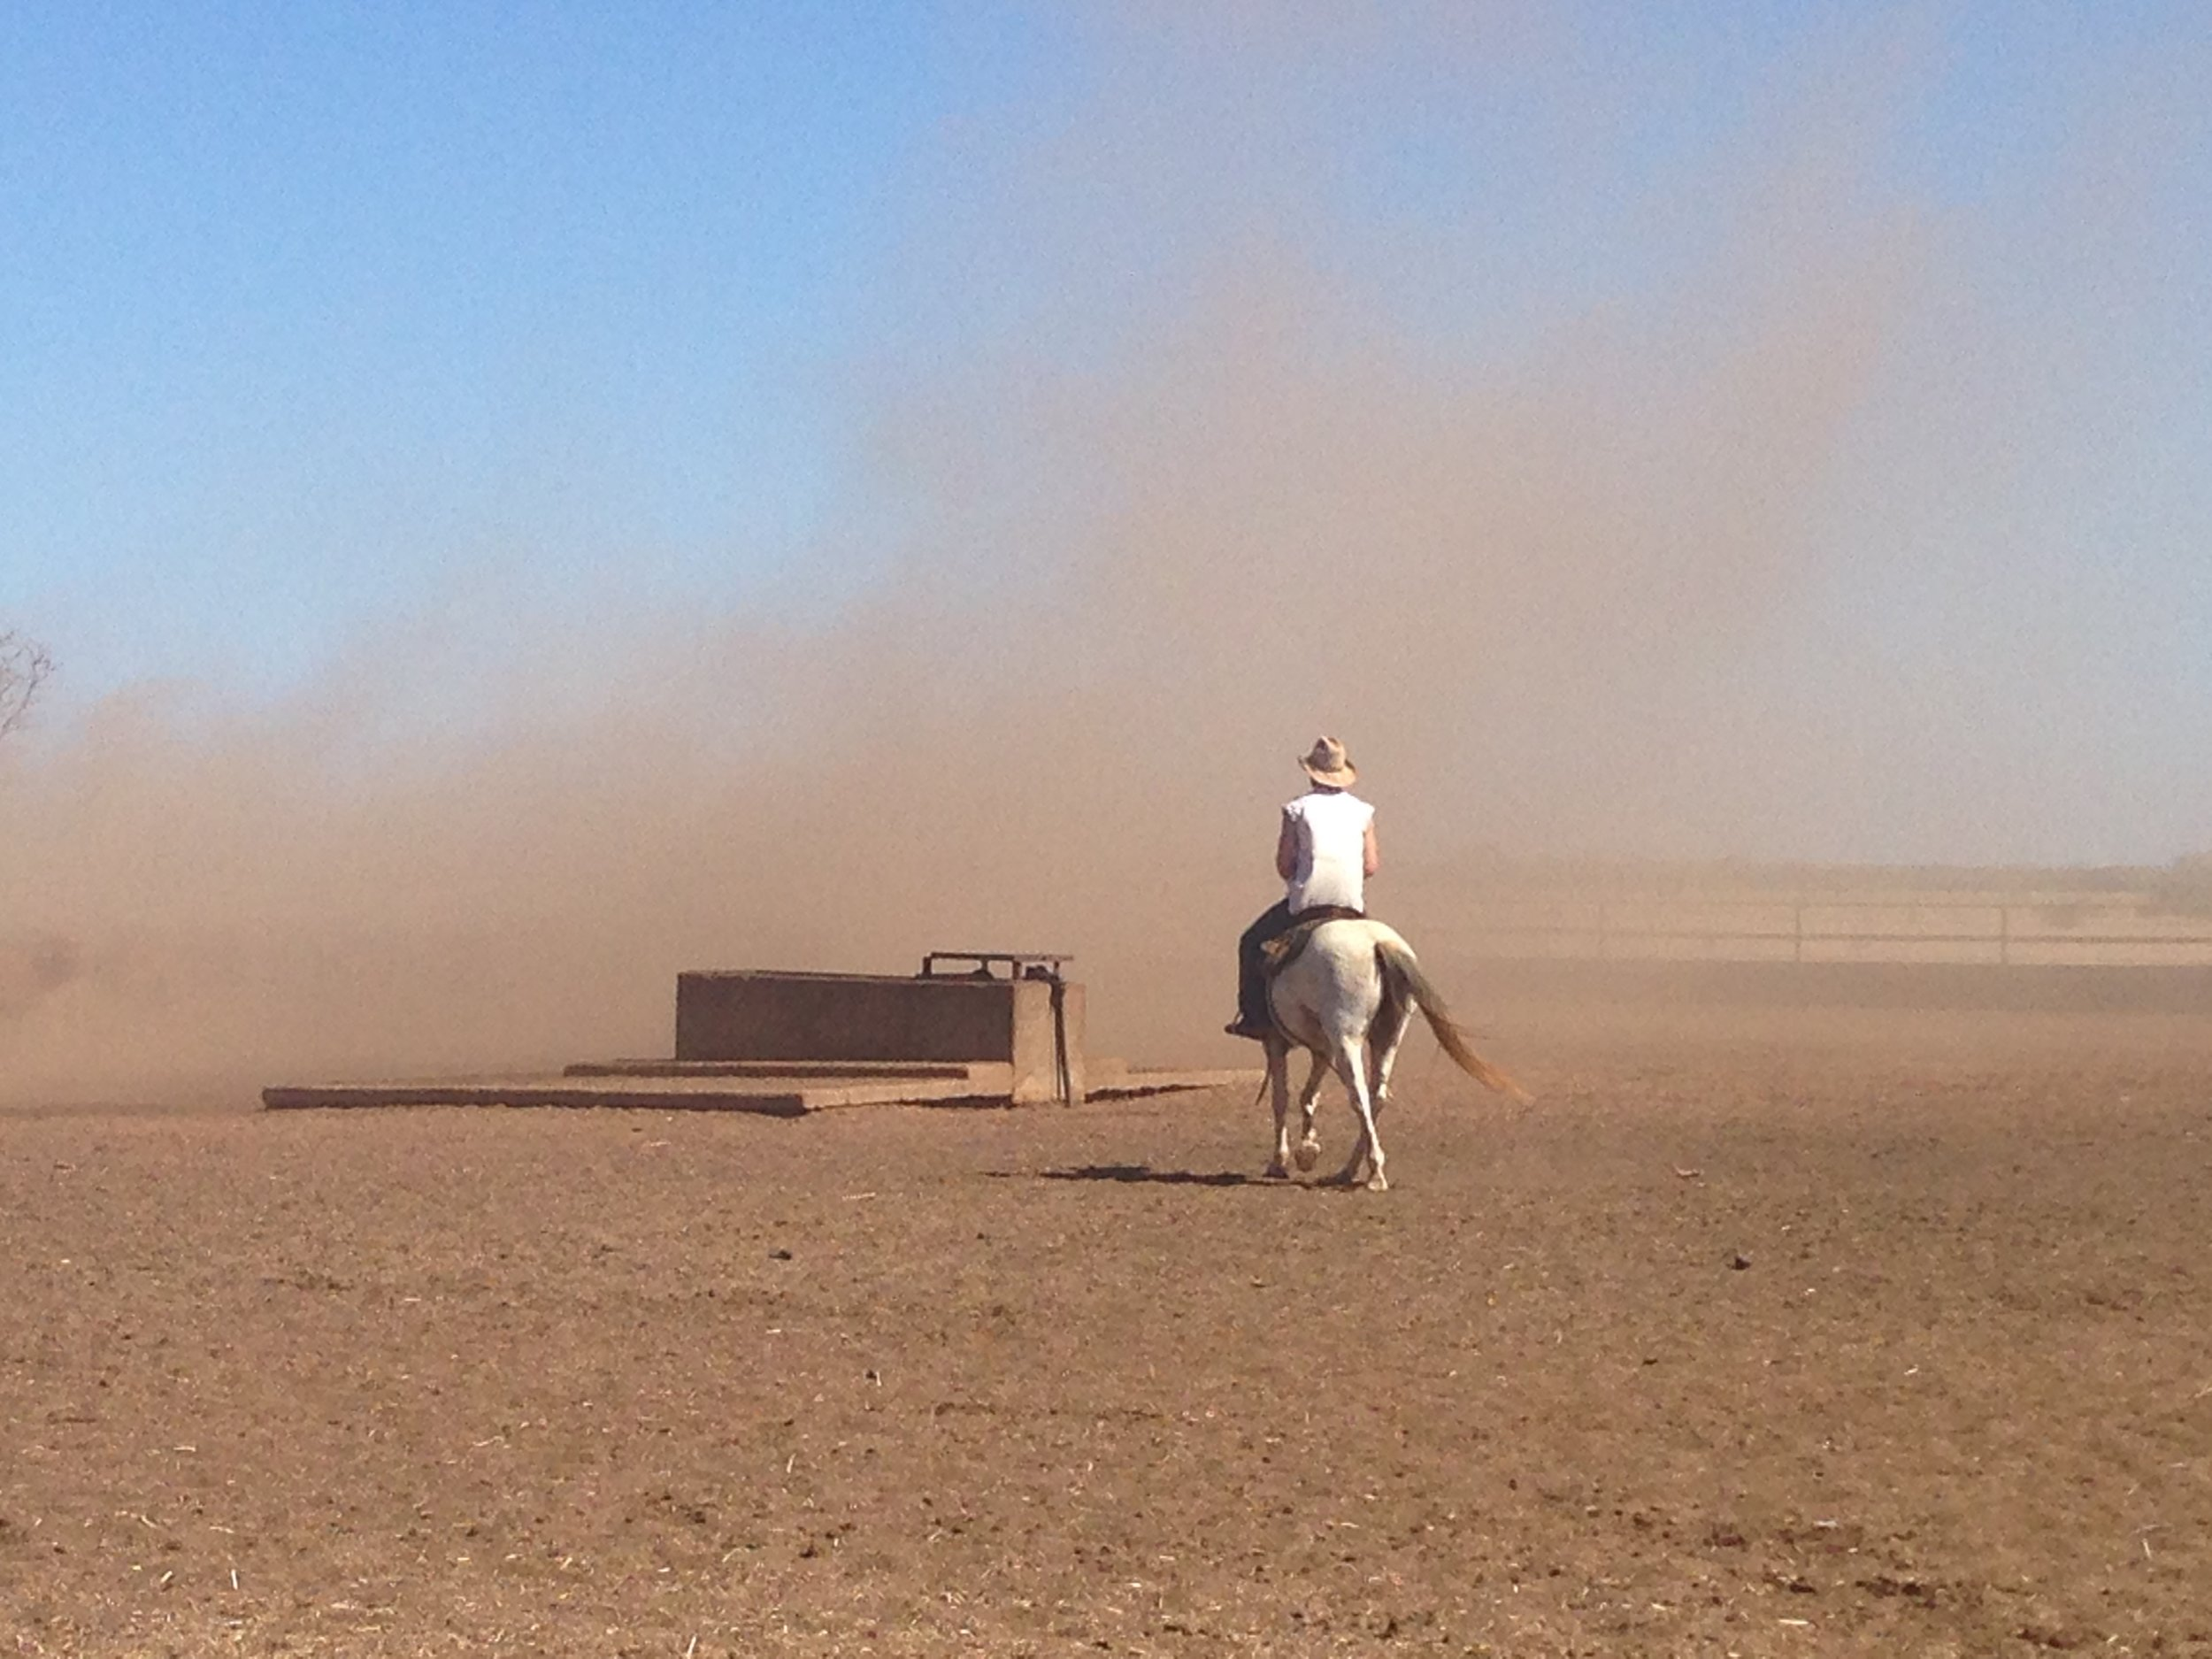 Riding in the Dust